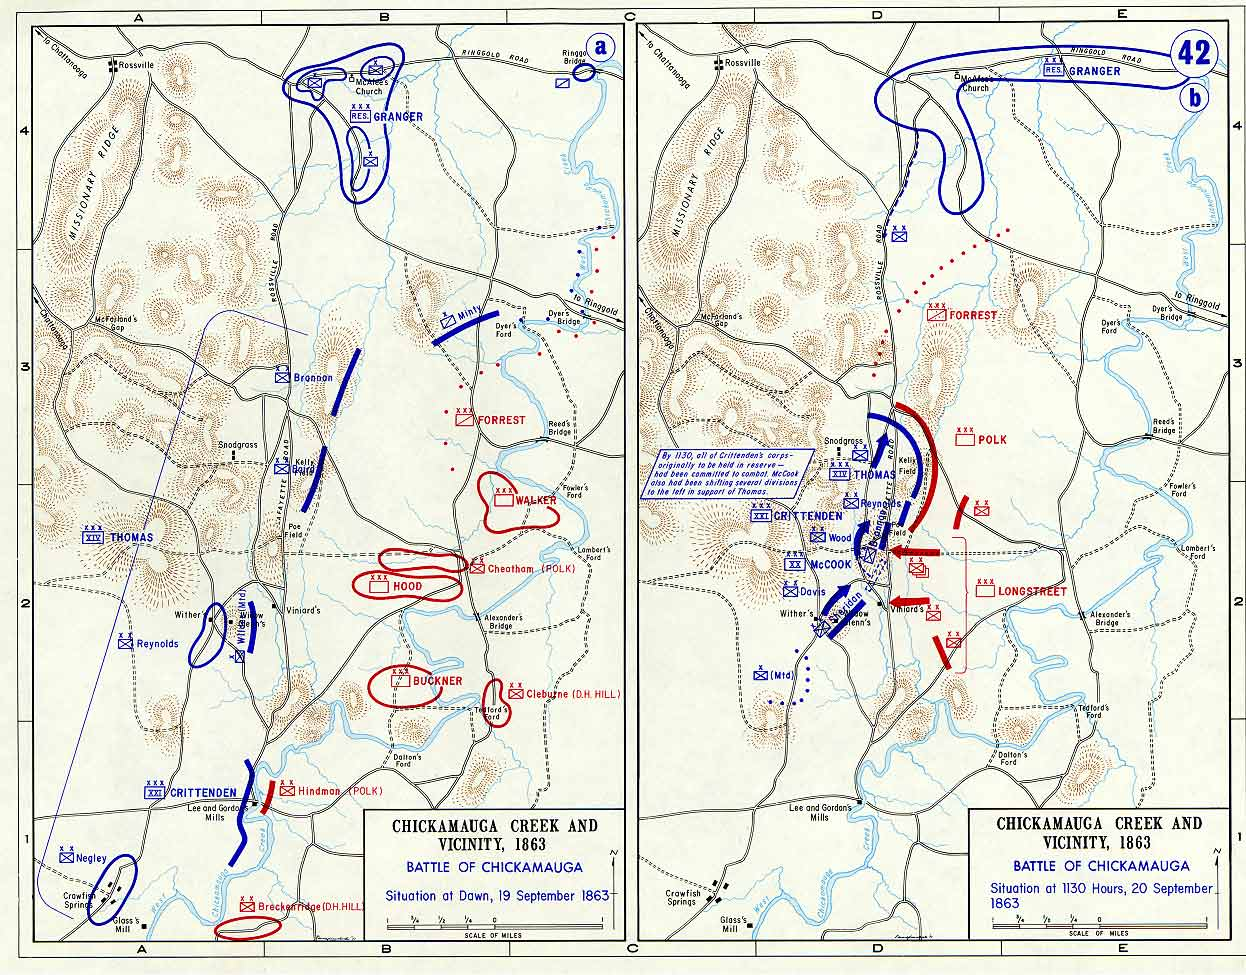 Battle Of Chickamauga Confederate And Union Positions - Battle of chickamauga map